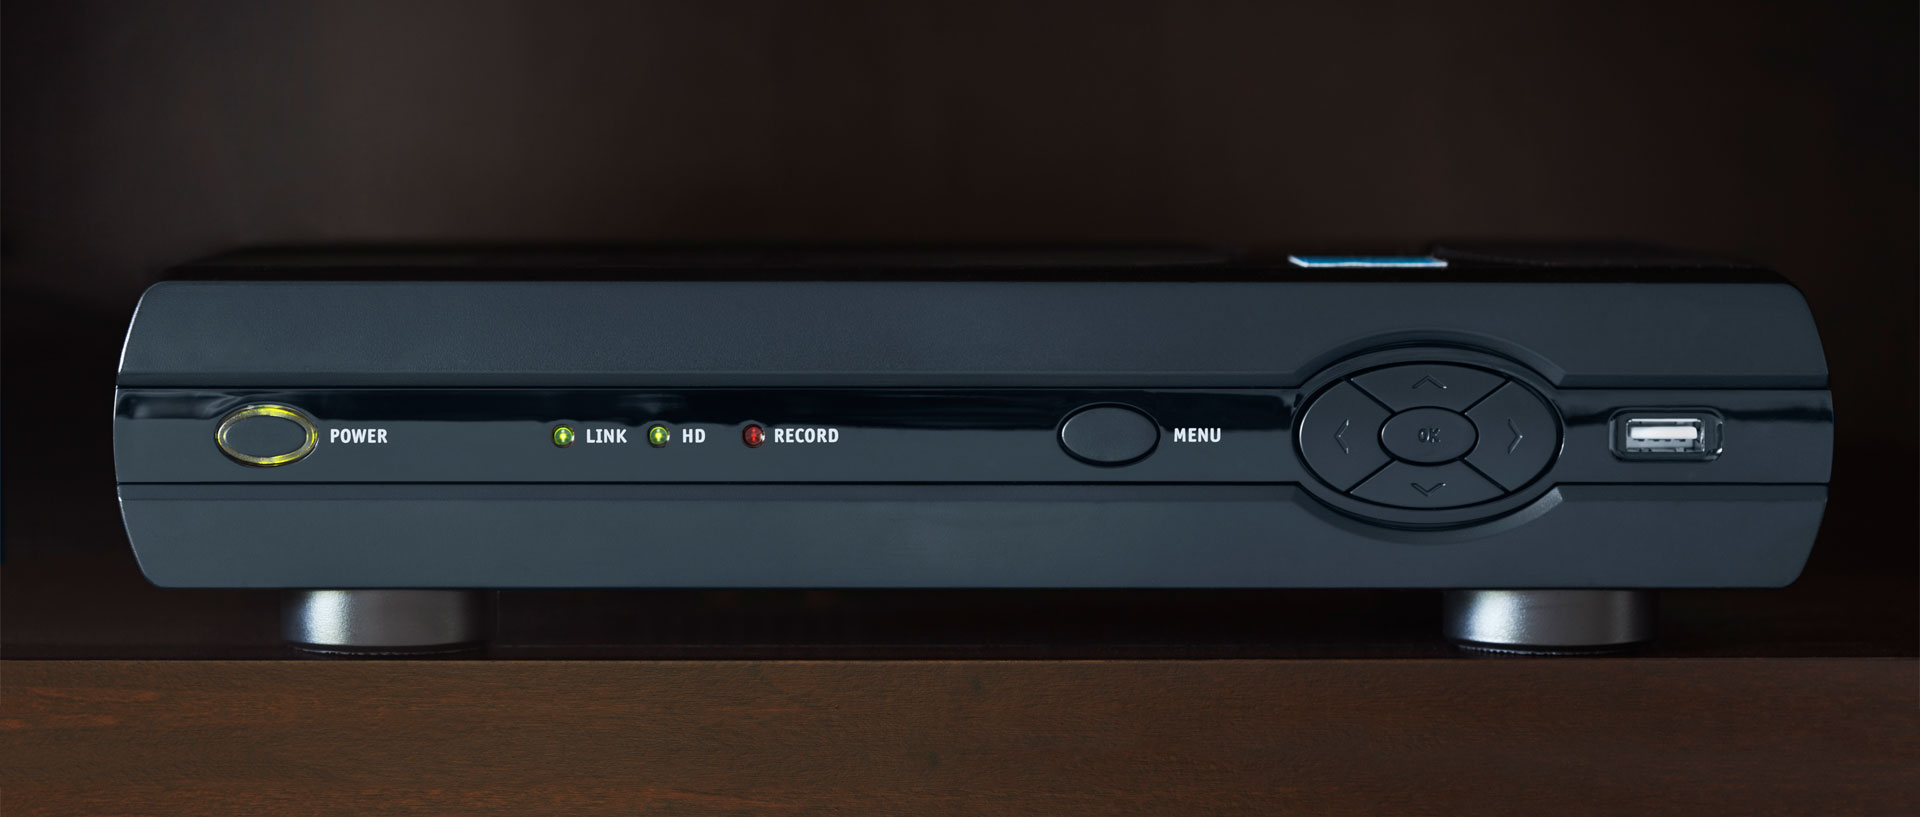 Why Your Cable Tv Bill Is Going Up